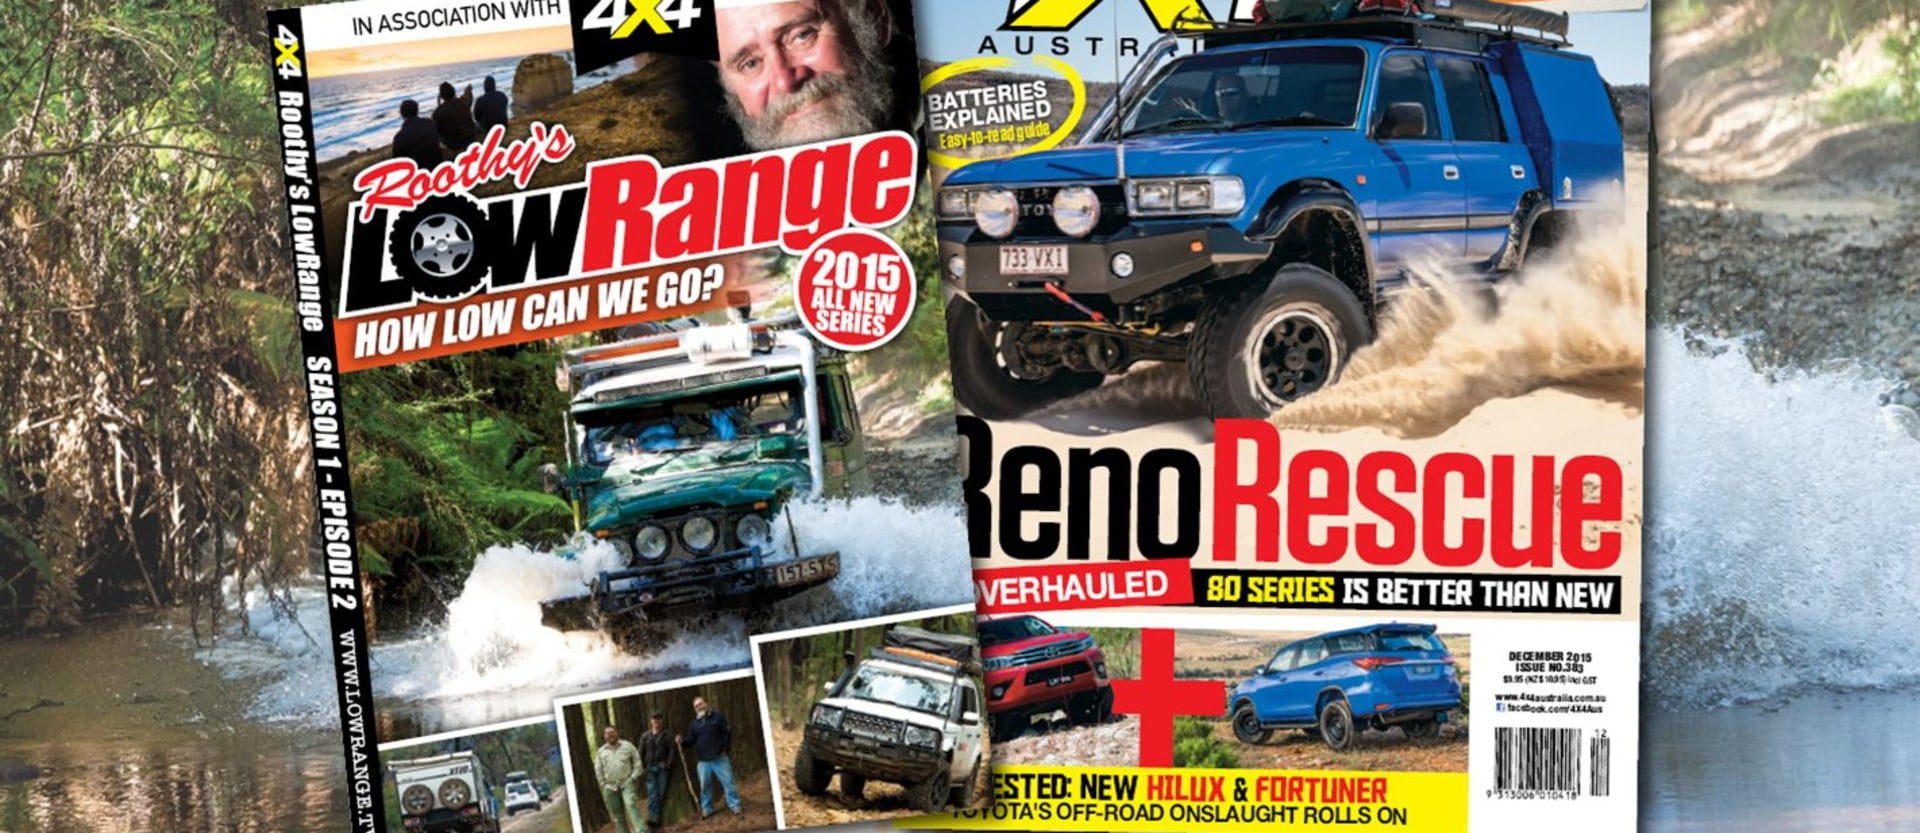 Roothy's Lowrange #2 DVD free with December issue